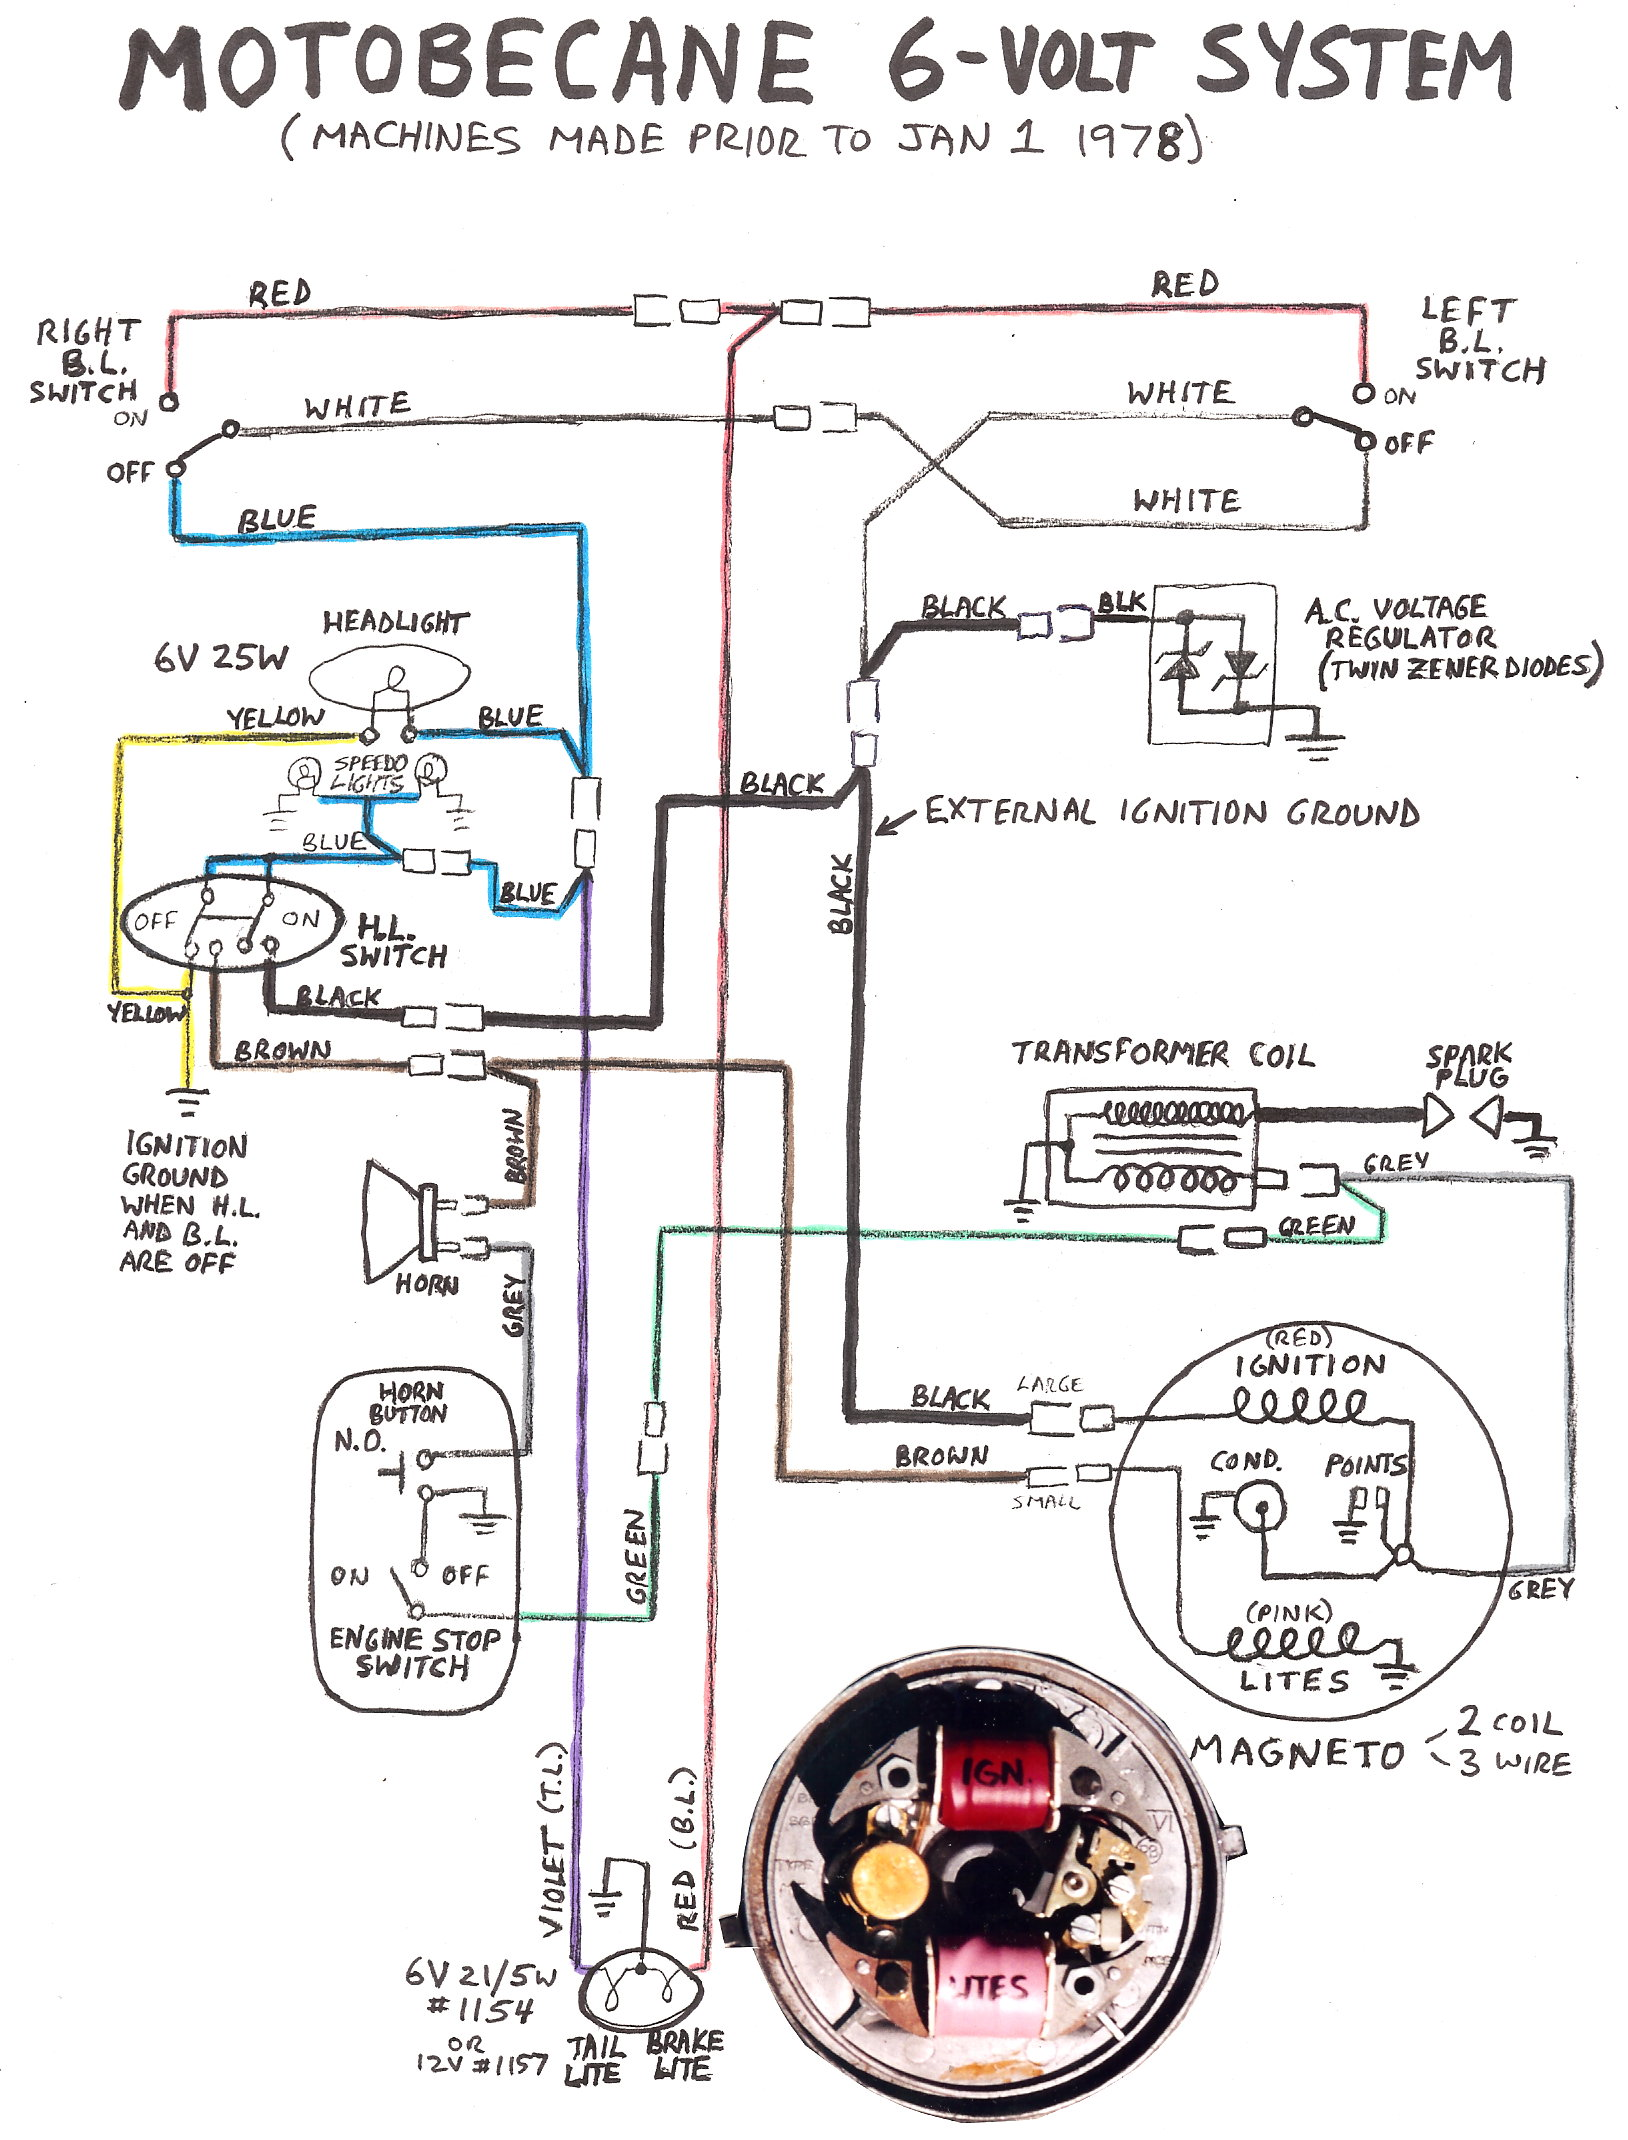 re weird moby 40t electrical issue moped army wiring schematics re weird moby 40t electrical issue